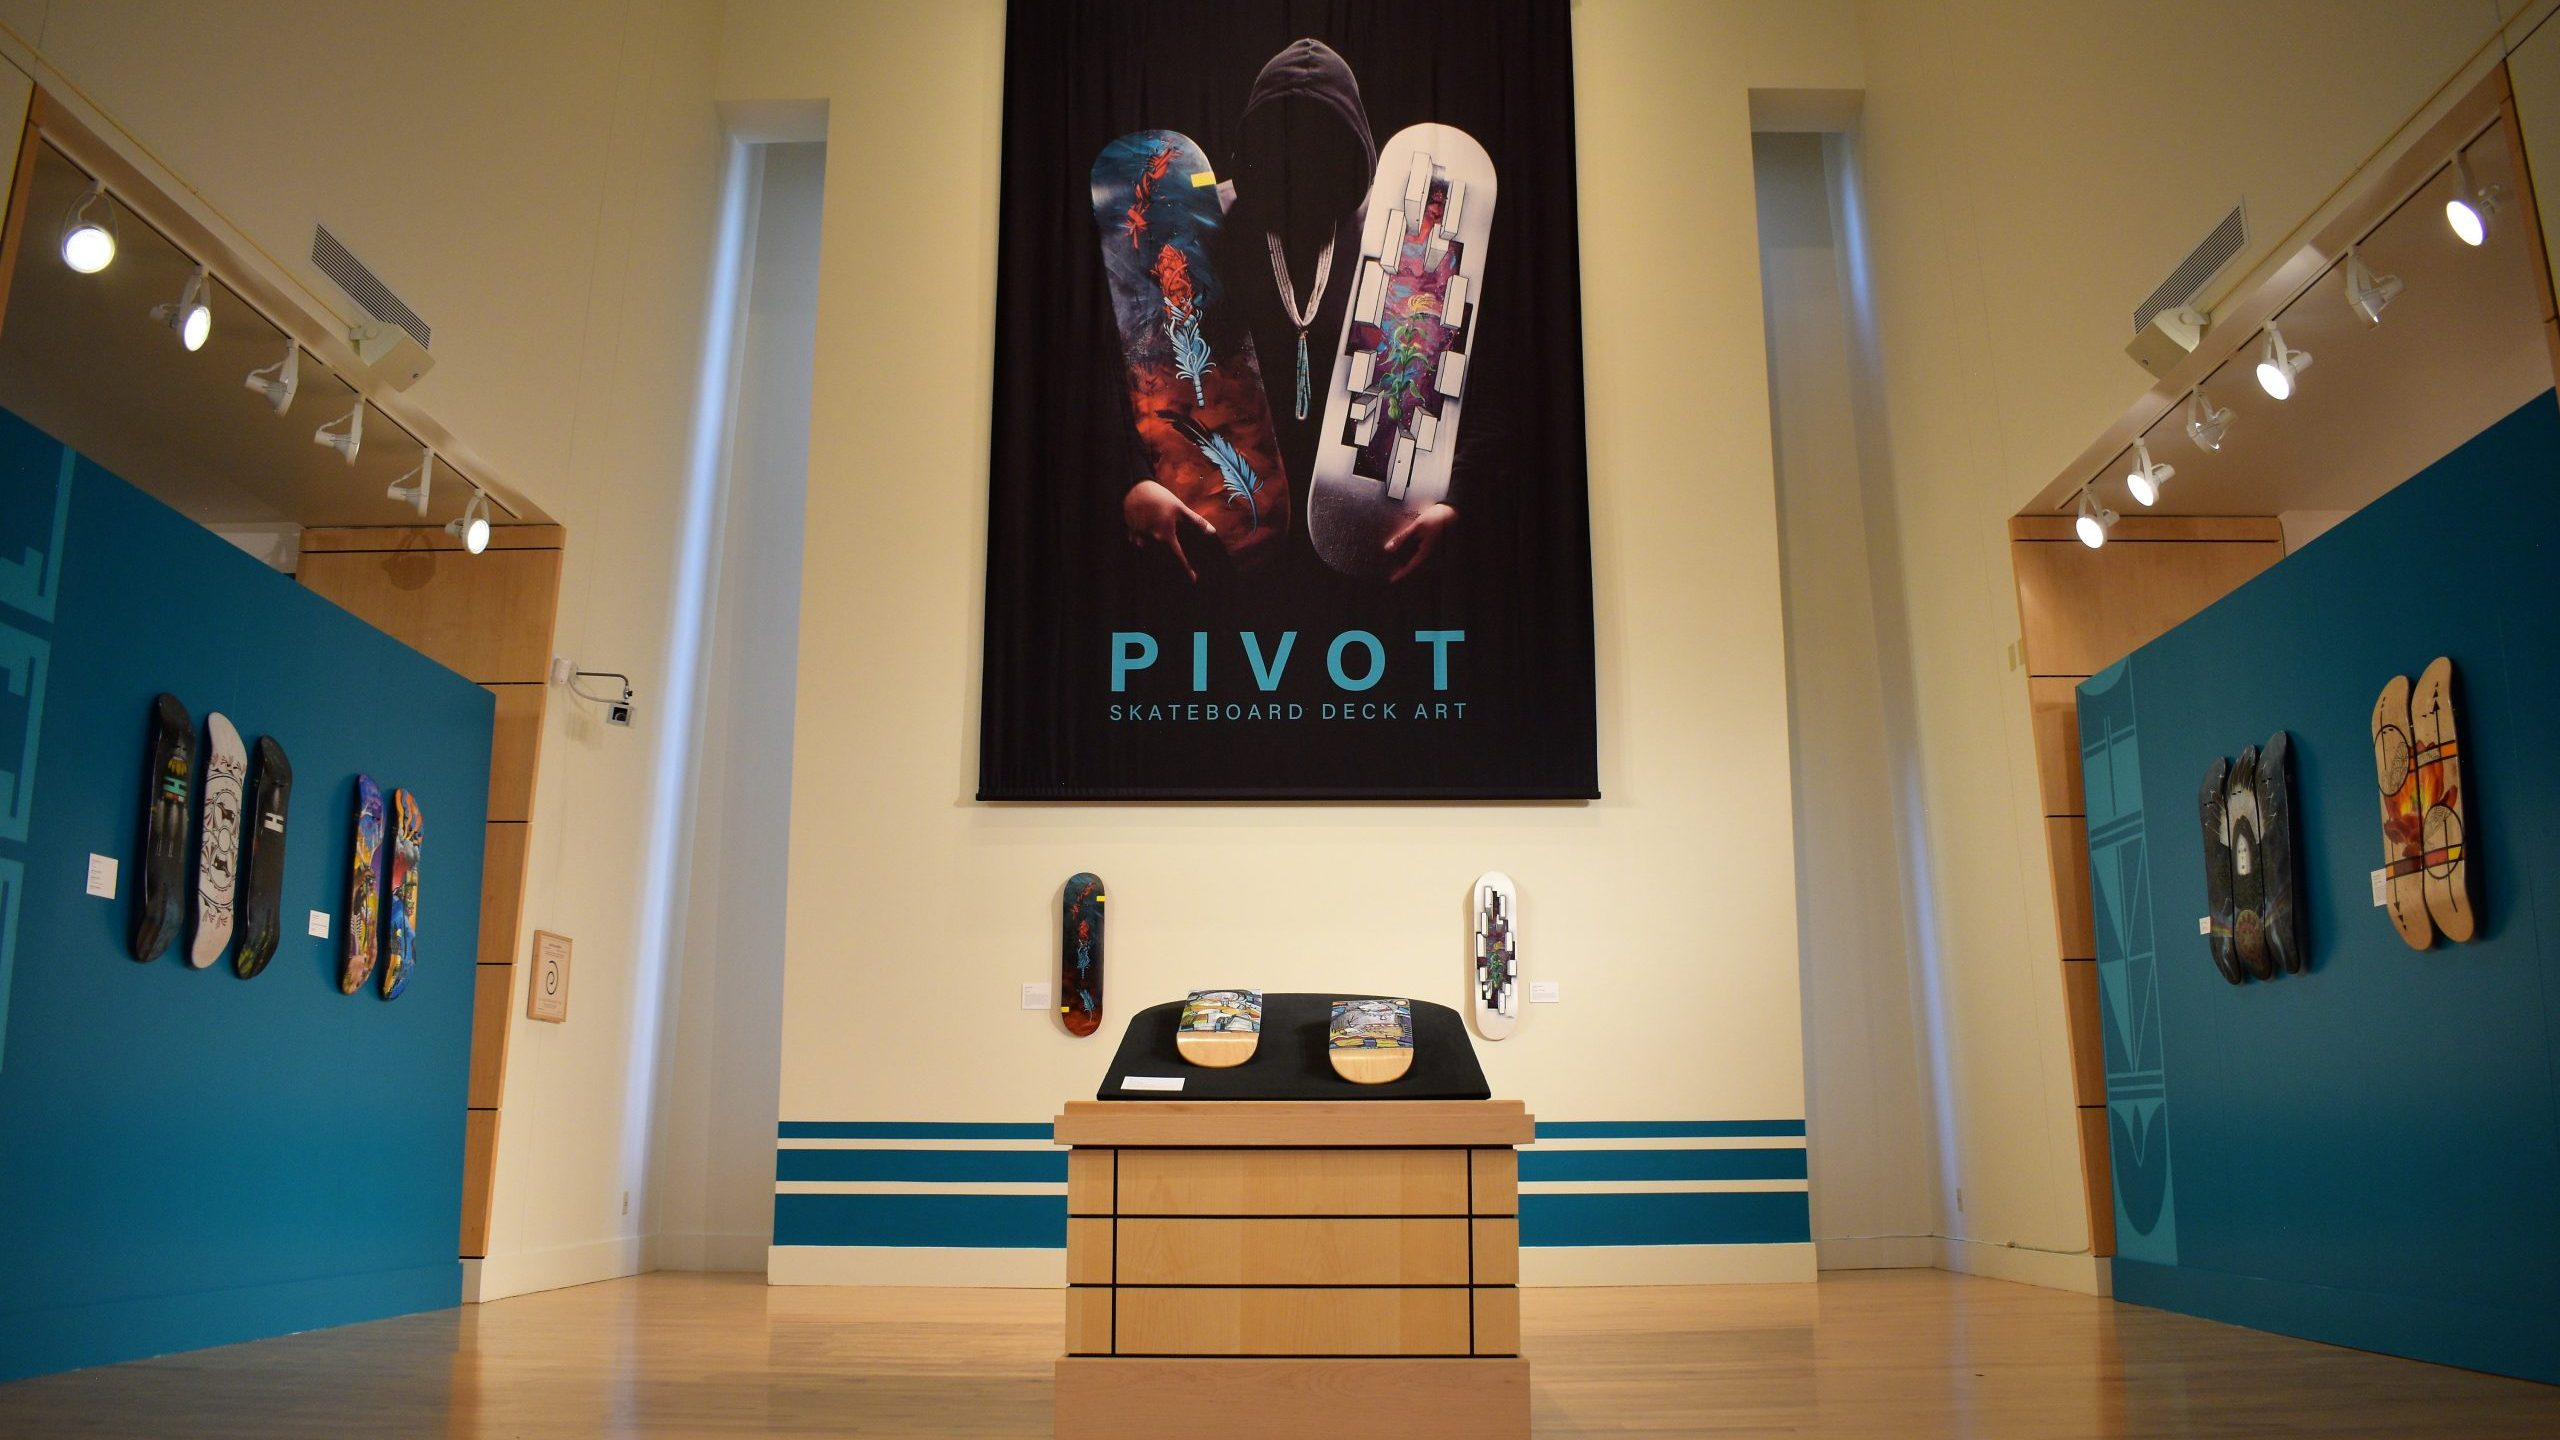 """An exhibition gallery with skateboard decks and the title """"PIVOT"""""""